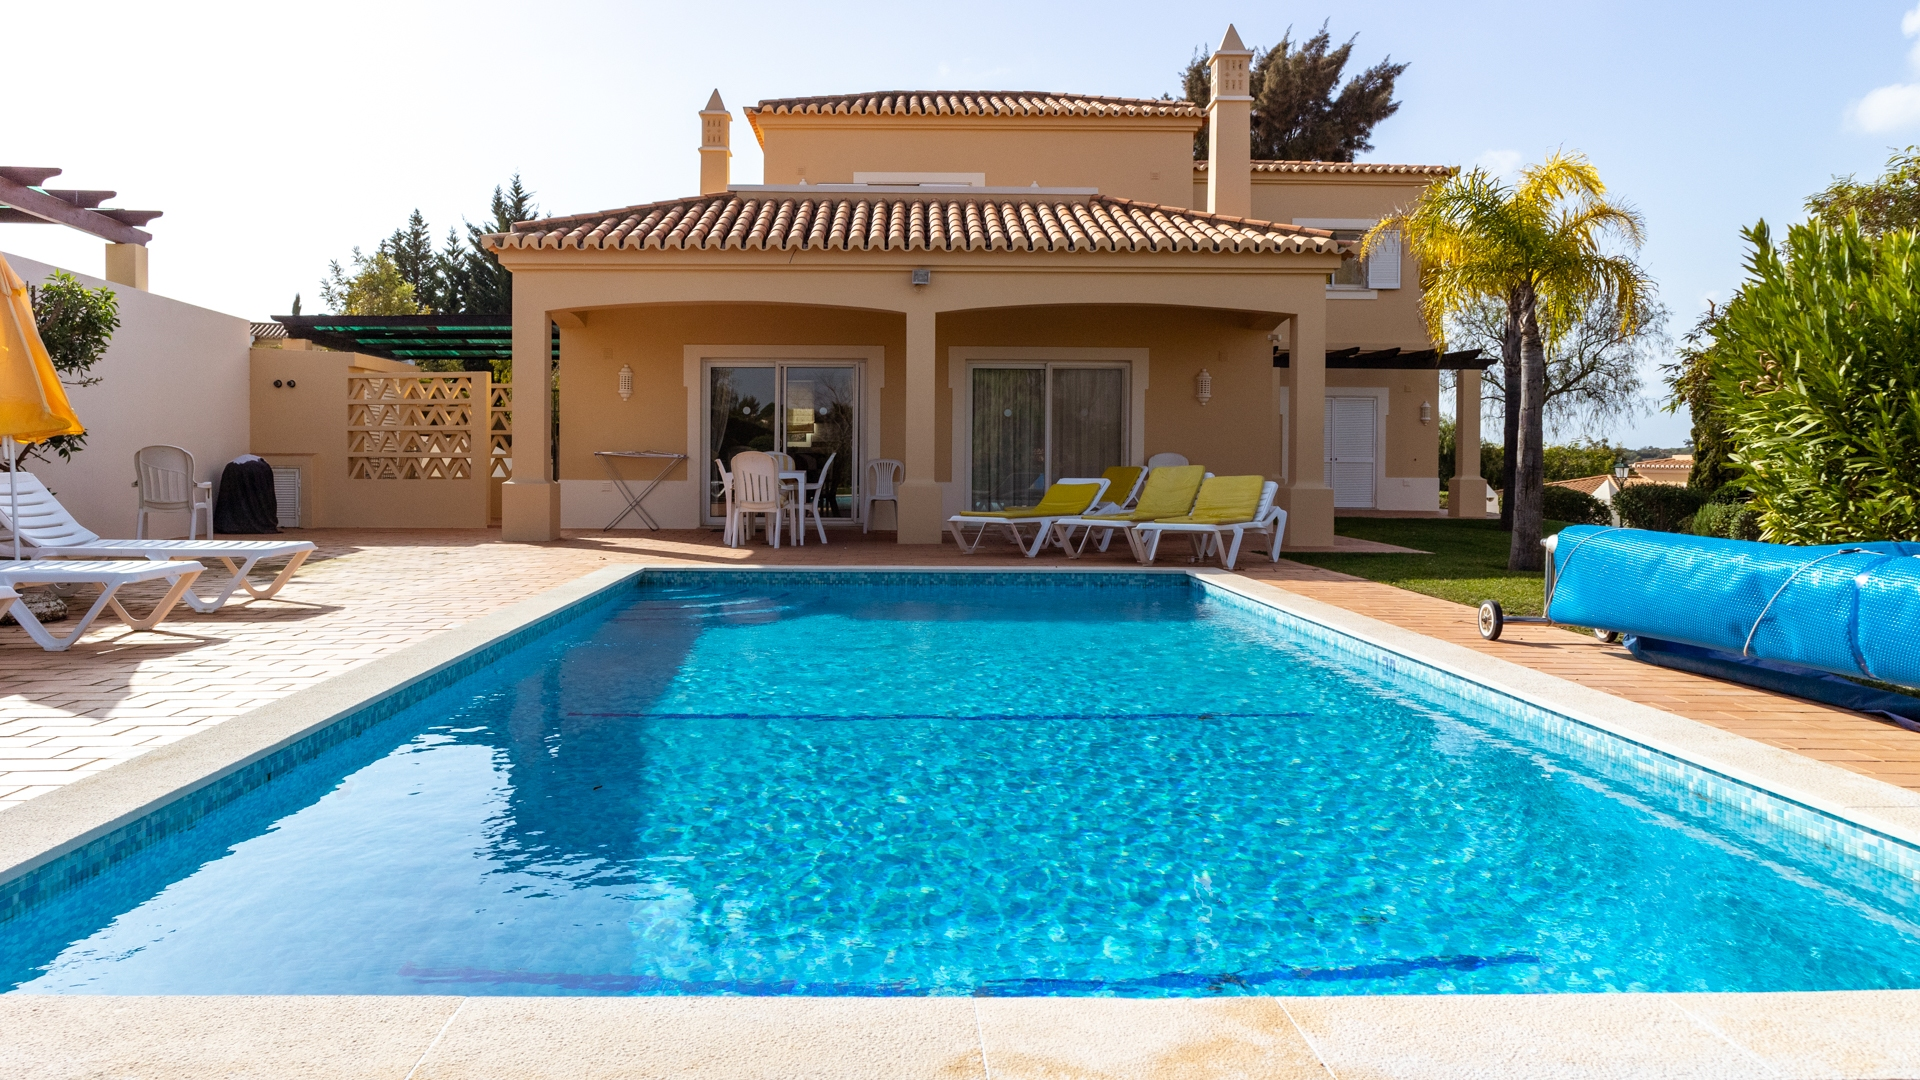 4 bedroom villa with heated private pool located on golf resort, near Carvoeiro | PCG1371 Four bedrooms three bathroom villa with large private pool and garden. Golf privileges and resort facilities, located in Gramacho golf, near Carvoeiro.